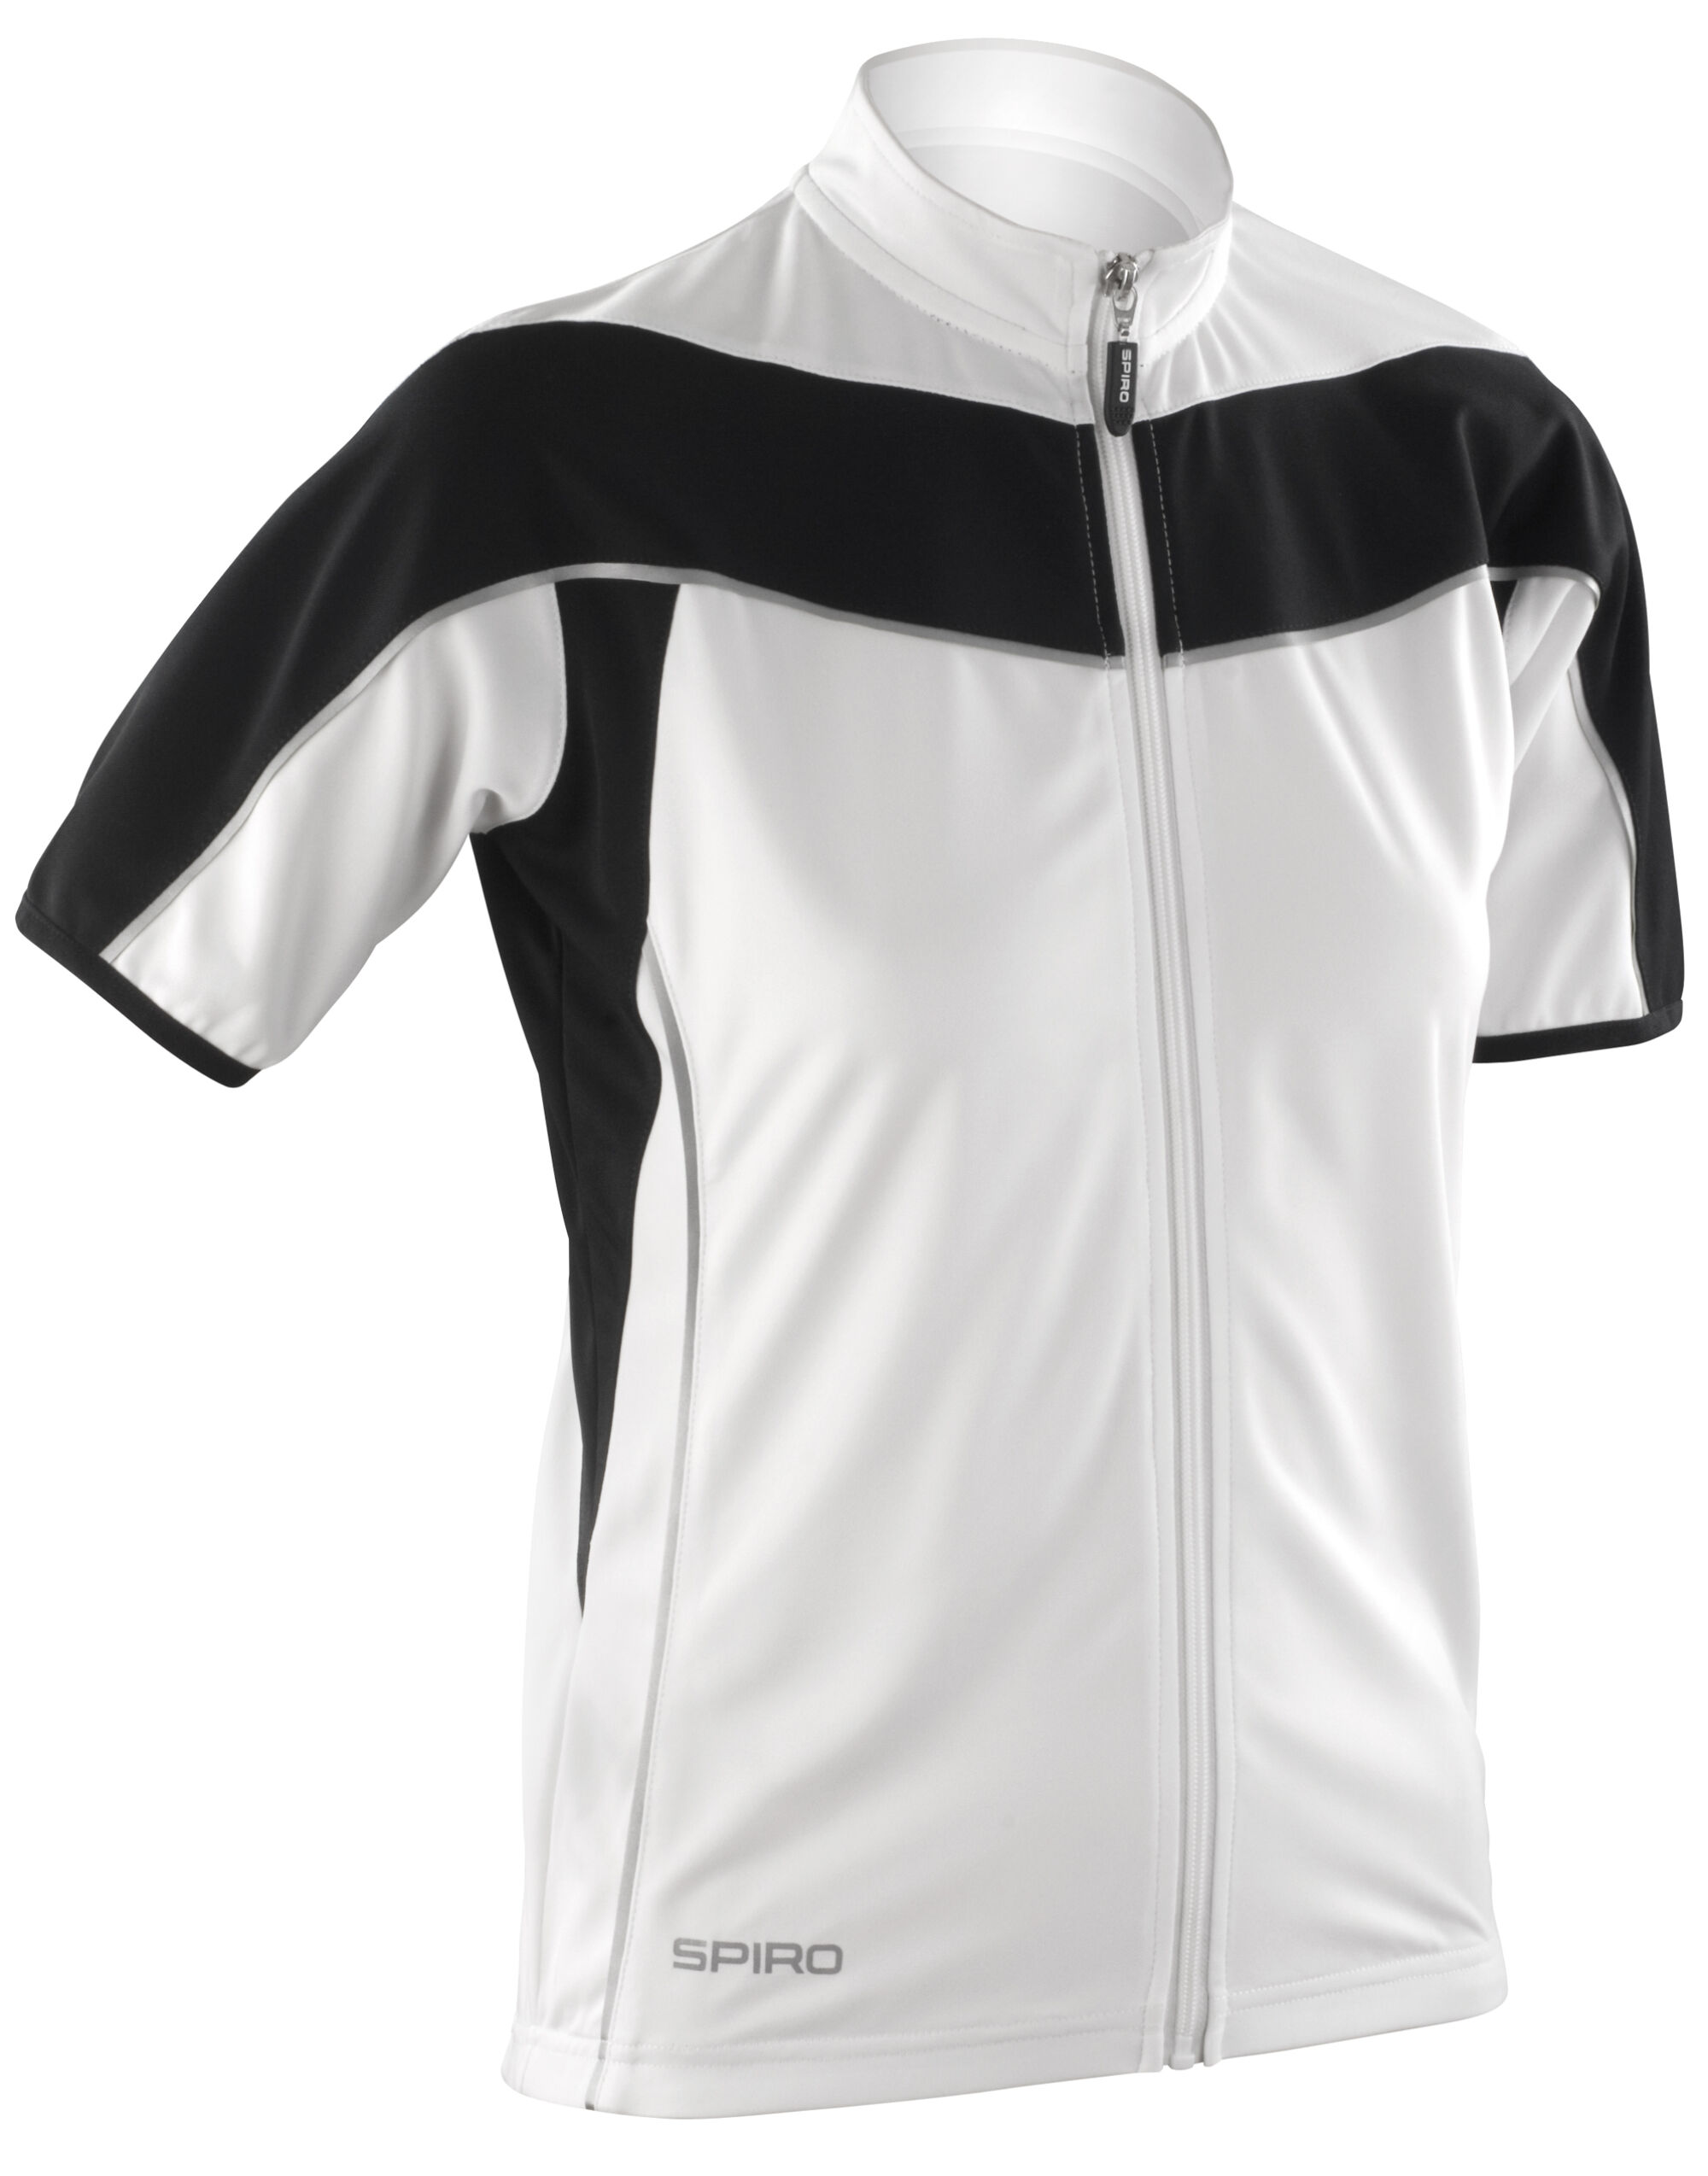 Spiro Ladies S/s Performance Top